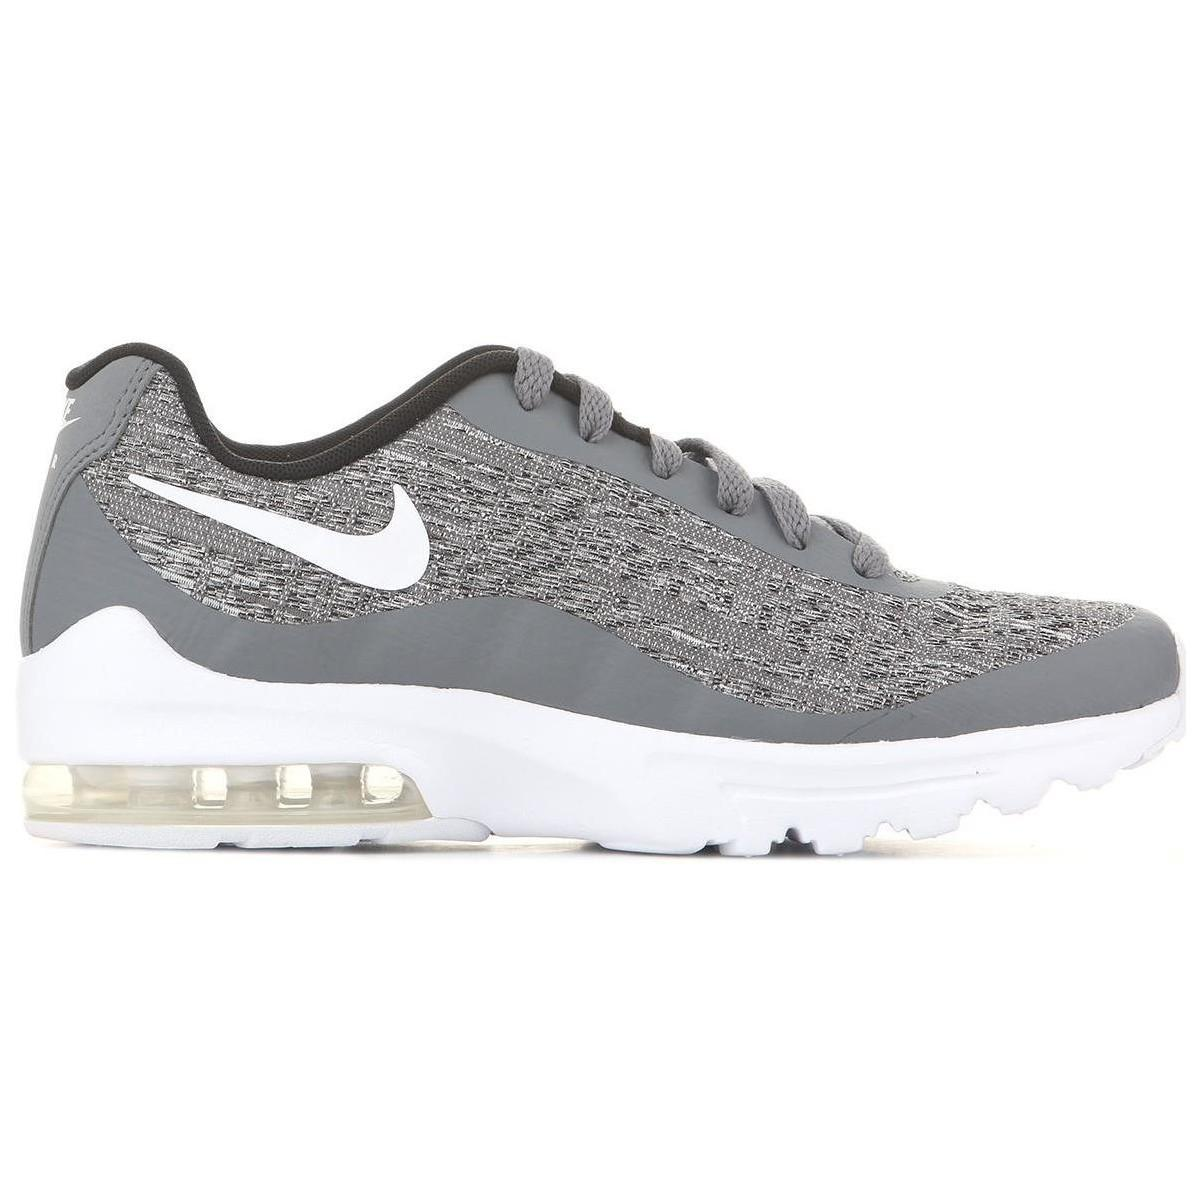 the latest 94839 2a7b3 Nike. Gray Wmns Air Max Invigor Wvn 917544-001 Women s Shoes (trainers) ...